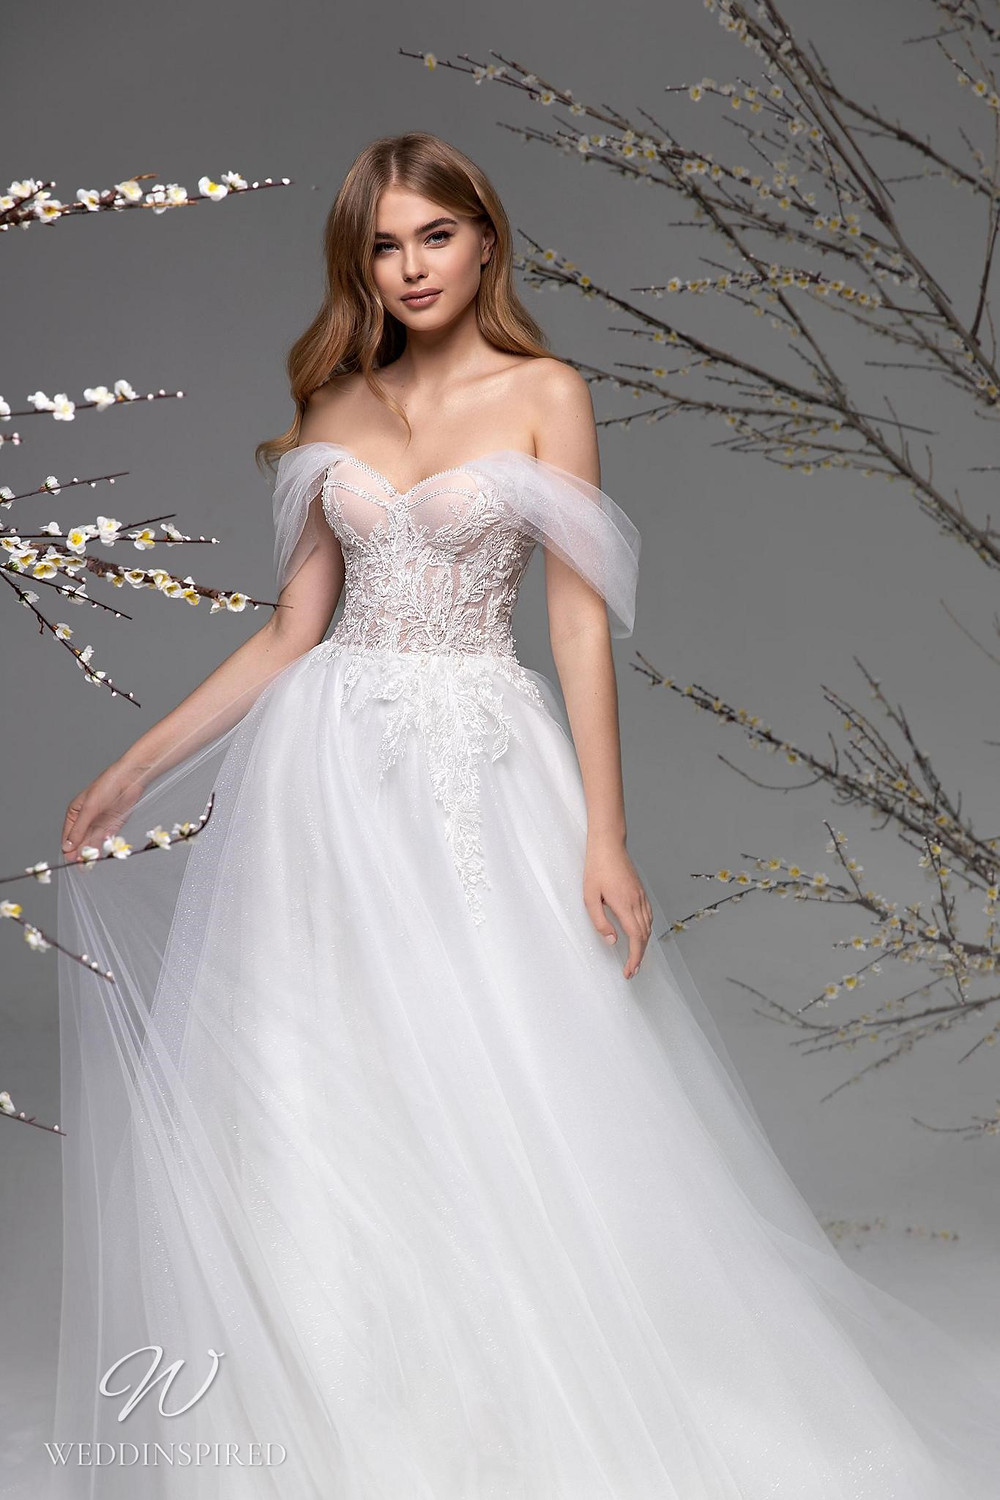 A Ricca Sposa off the shoulder mesh and lace A-line wedding dress